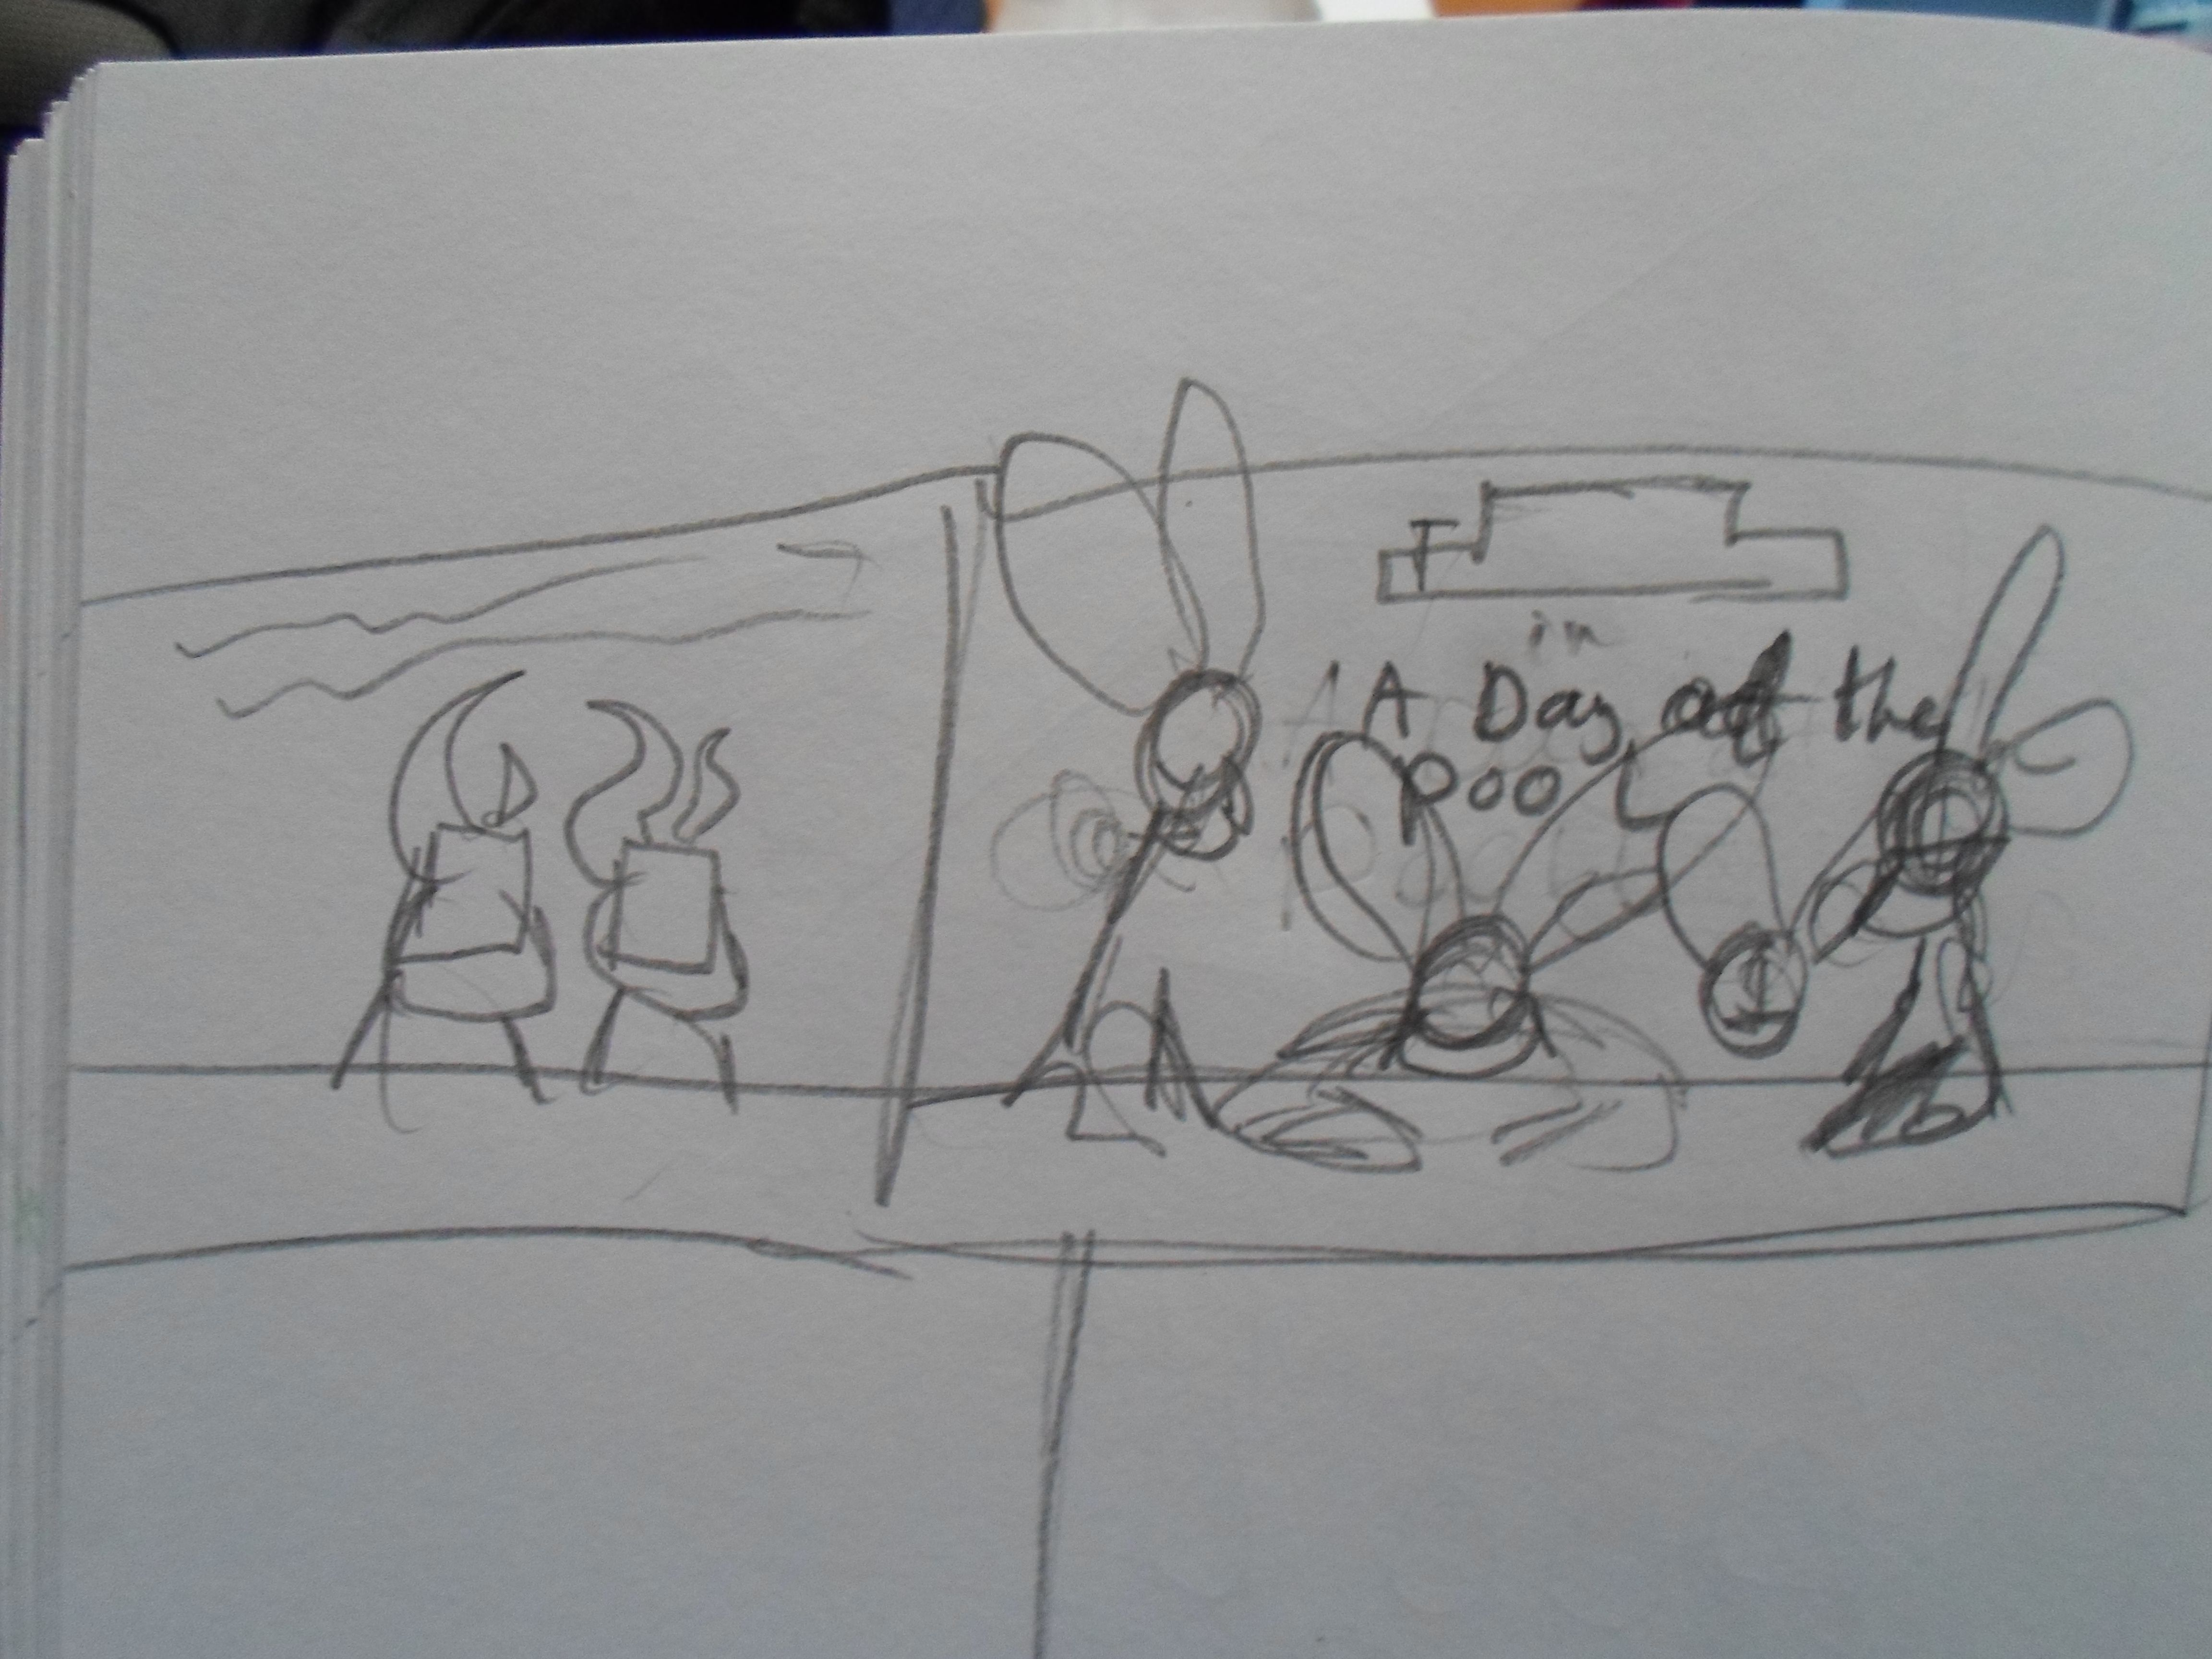 One of the beginning sketches of the project.